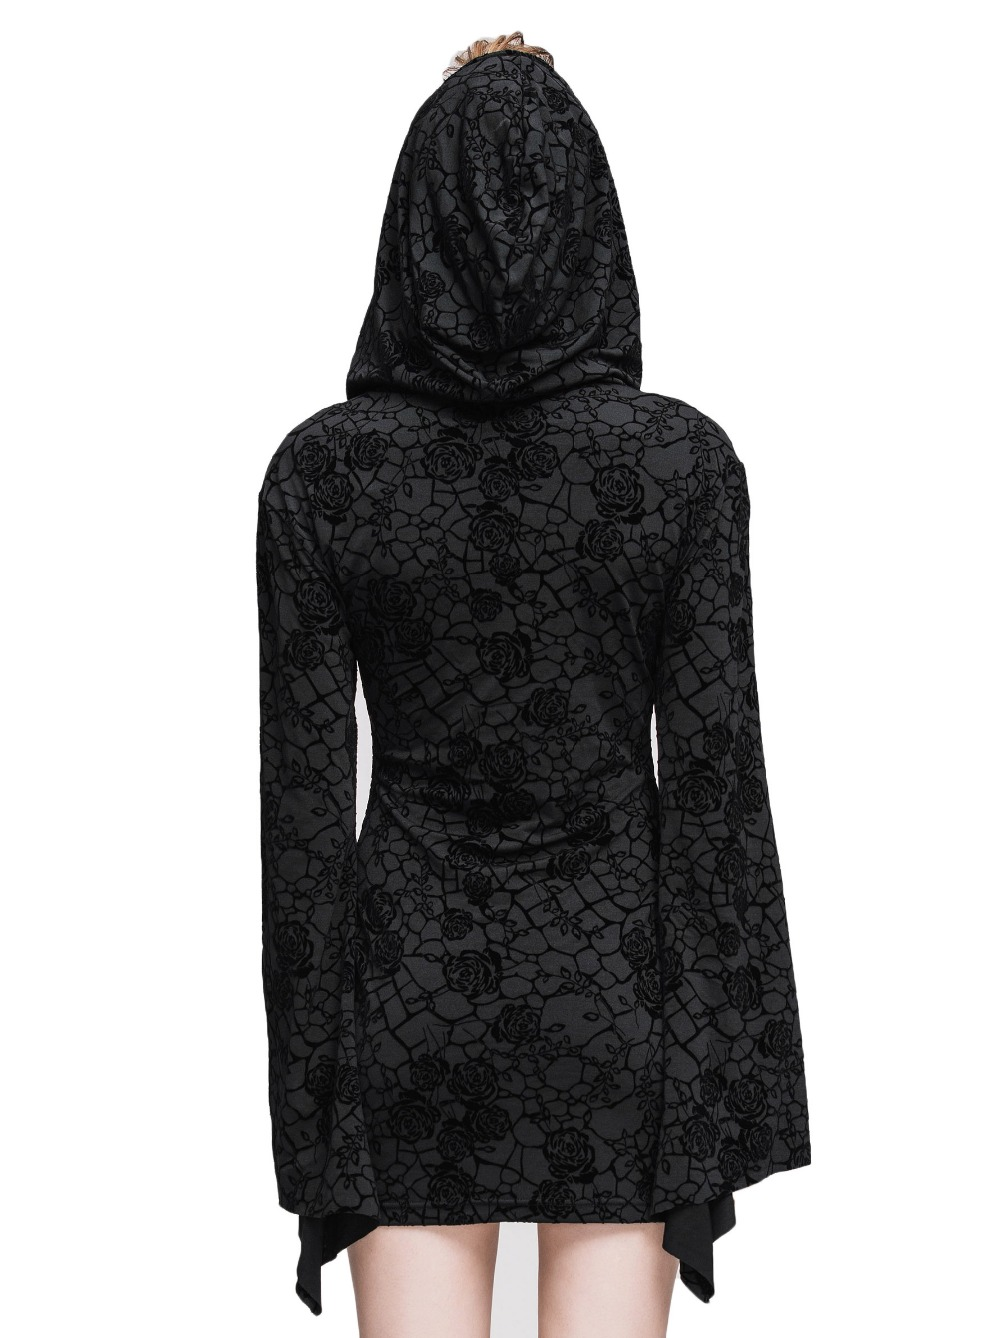 Steampunk Gothic Ukraine Black Dresses For Women Roses Print Flocking Knitted Dress With Hooded Long Sleeve Women Clothing 10